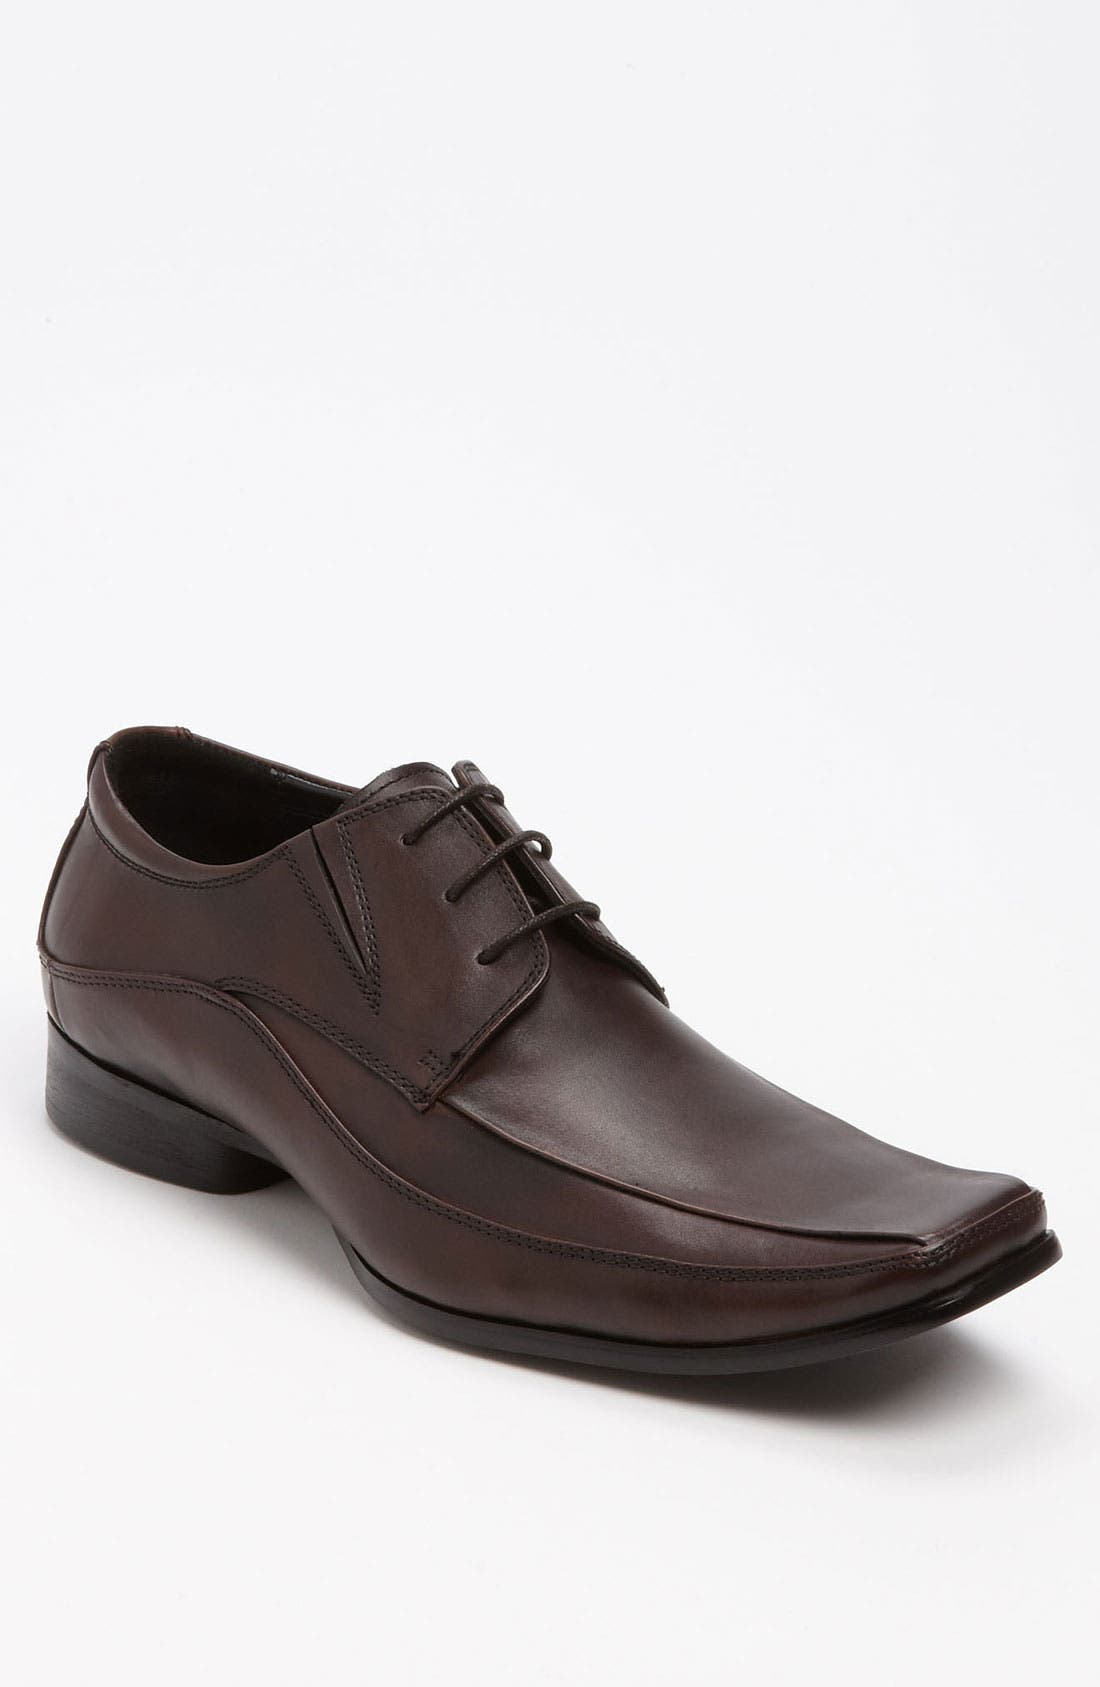 Alternate Image 1 Selected - Kenneth Cole Reaction 'Field Note' Derby